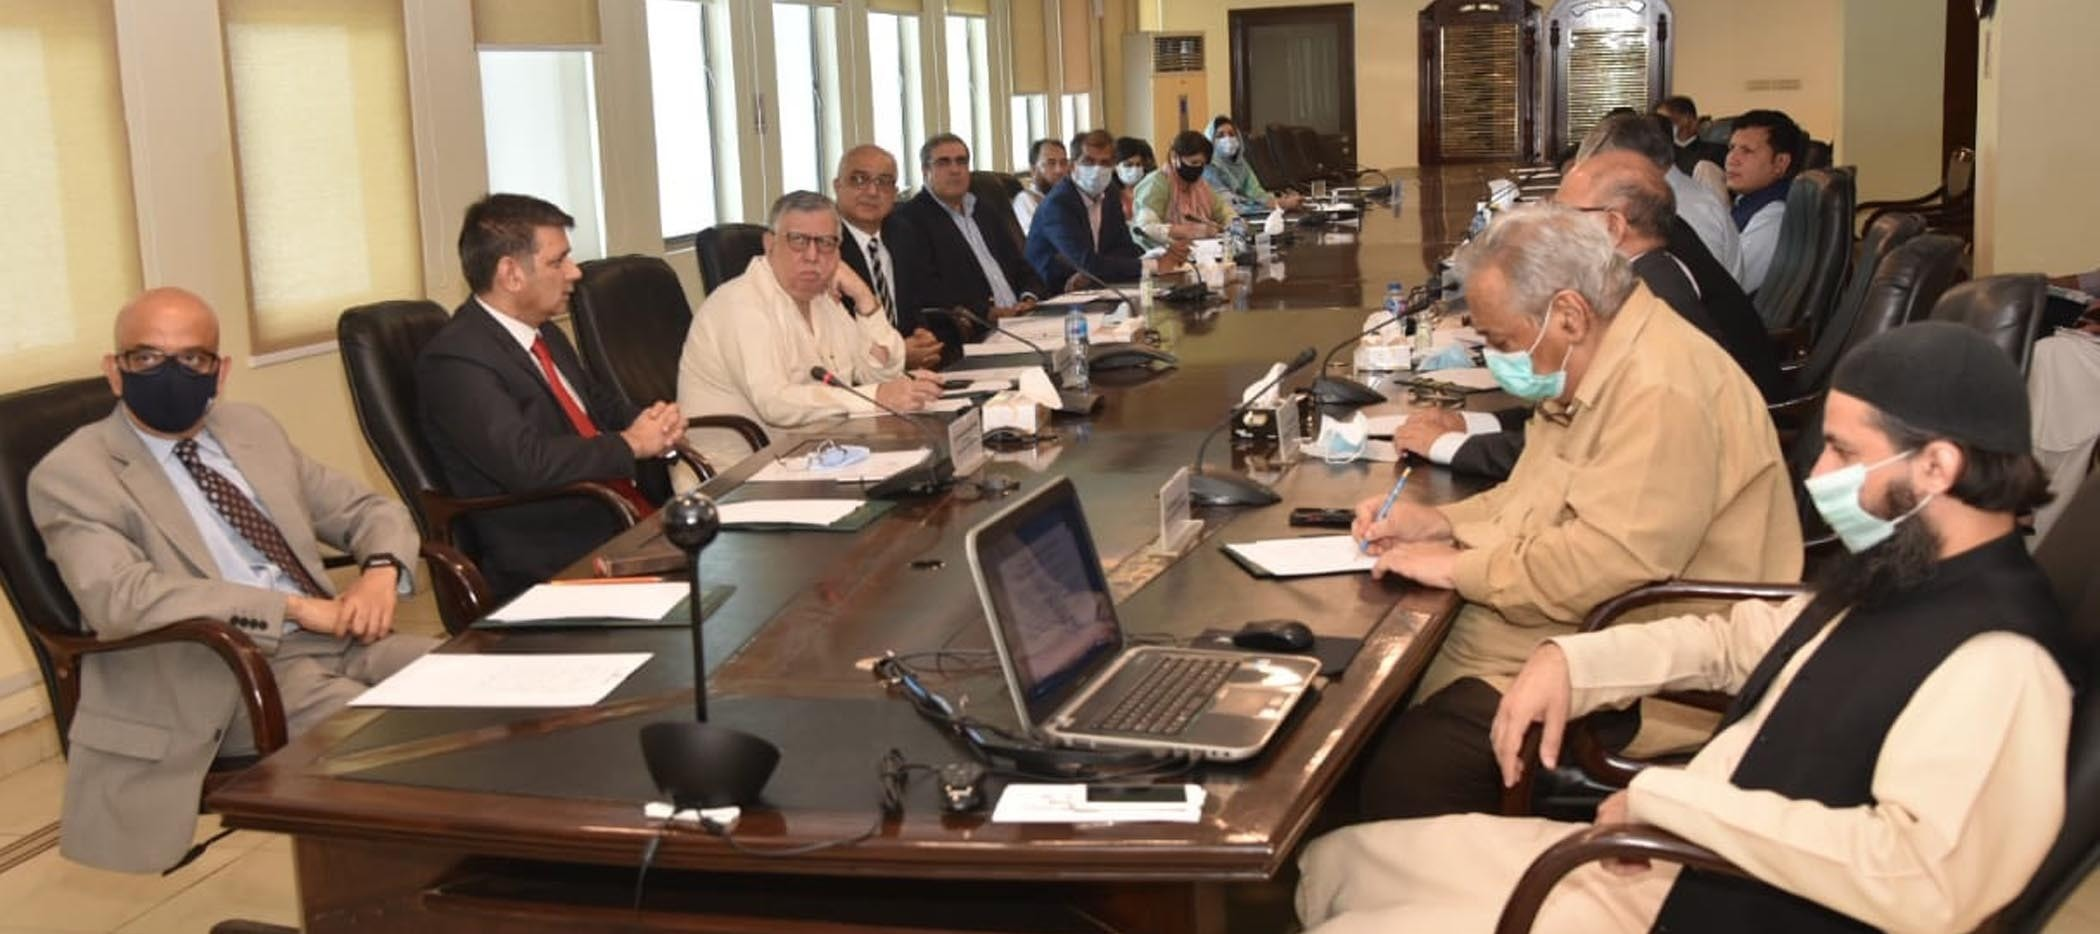 Finance Minister Shaukat Tarin chairs a meeting of the National Tax Council at the Finance Division on Thursday. — Photo courtesy: PID